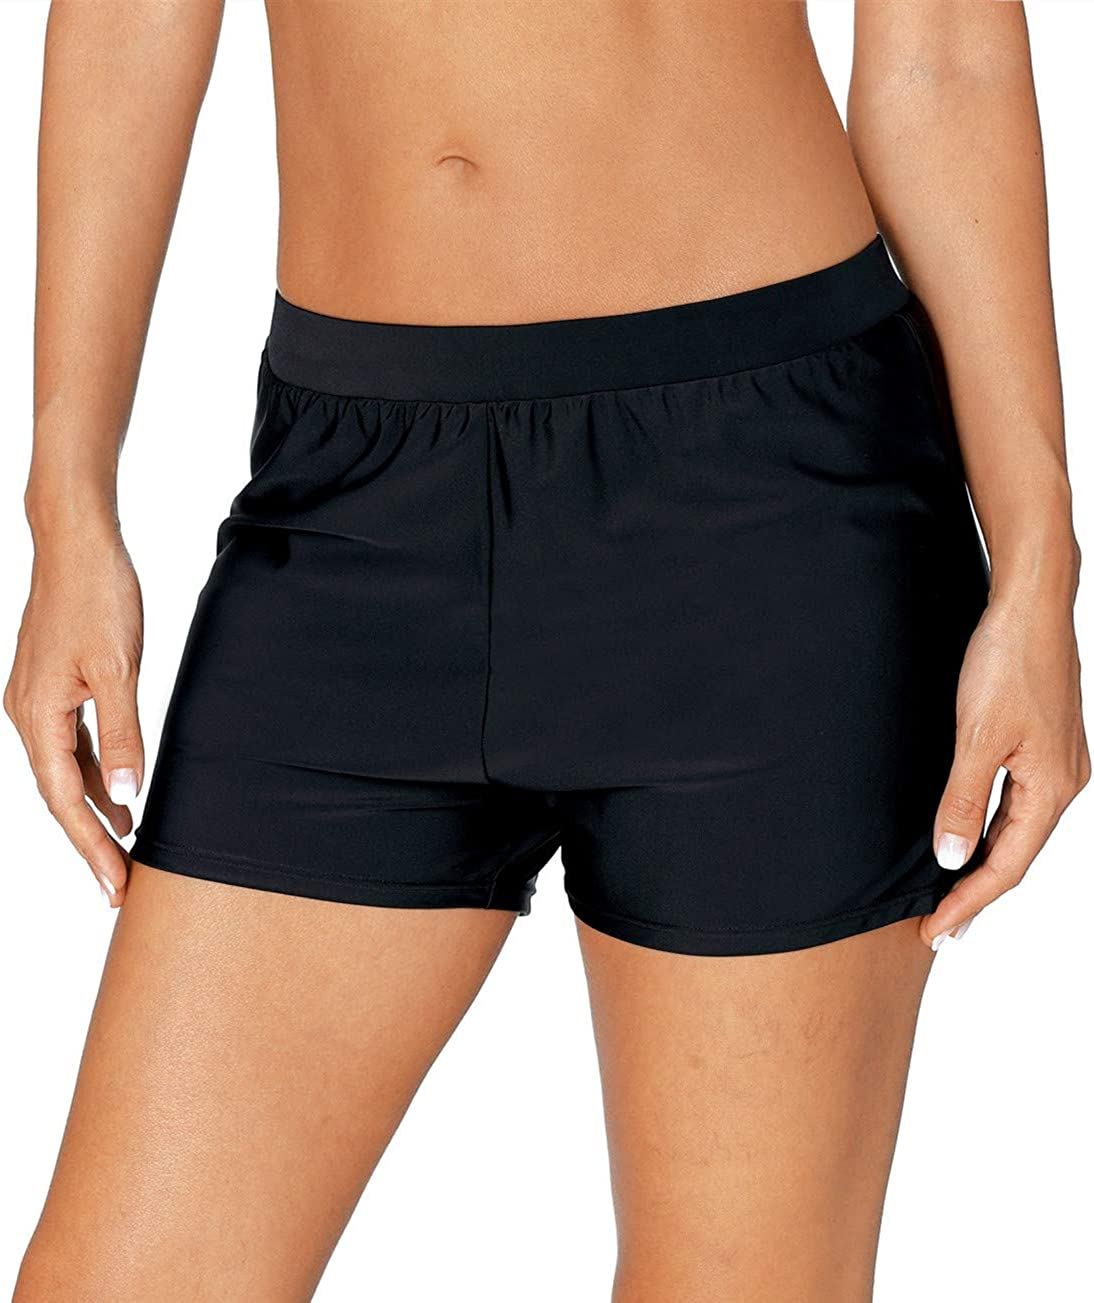 Eytino Women Solid Lace Hollow Out Swim Shorts Stretch Board Shorts Swimsuit Bottoms,Large Black